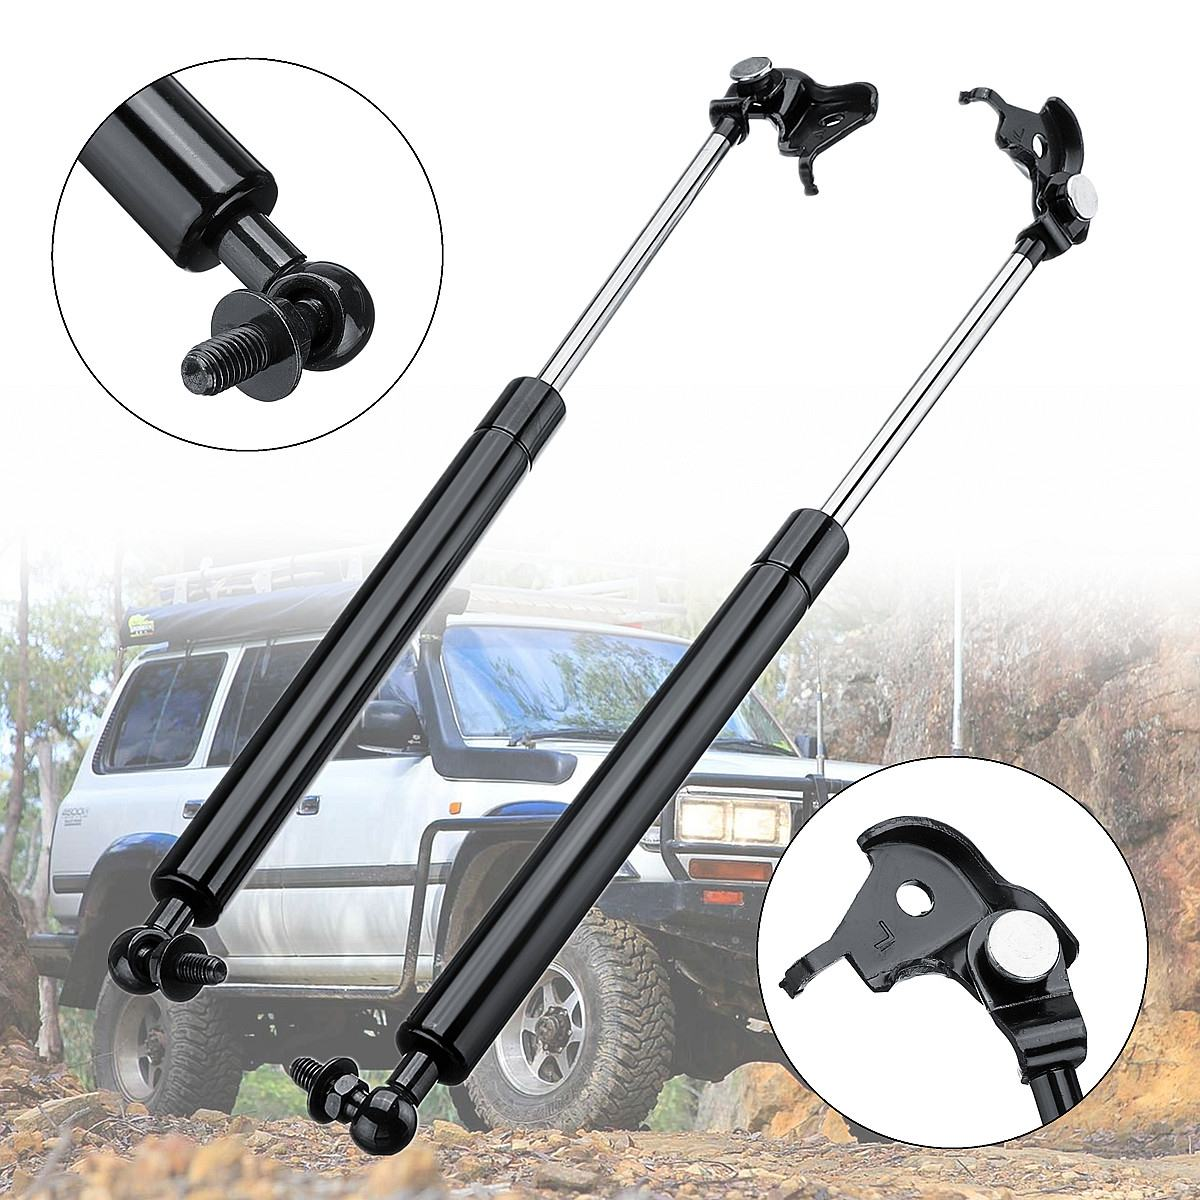 2 x Front Bonnet Hood Gas Struts Support For Toyota Land Cruiser 80 Series 90 97 Length 47cm Steel Auto Replacement Parts|Strut Bars| |  - title=